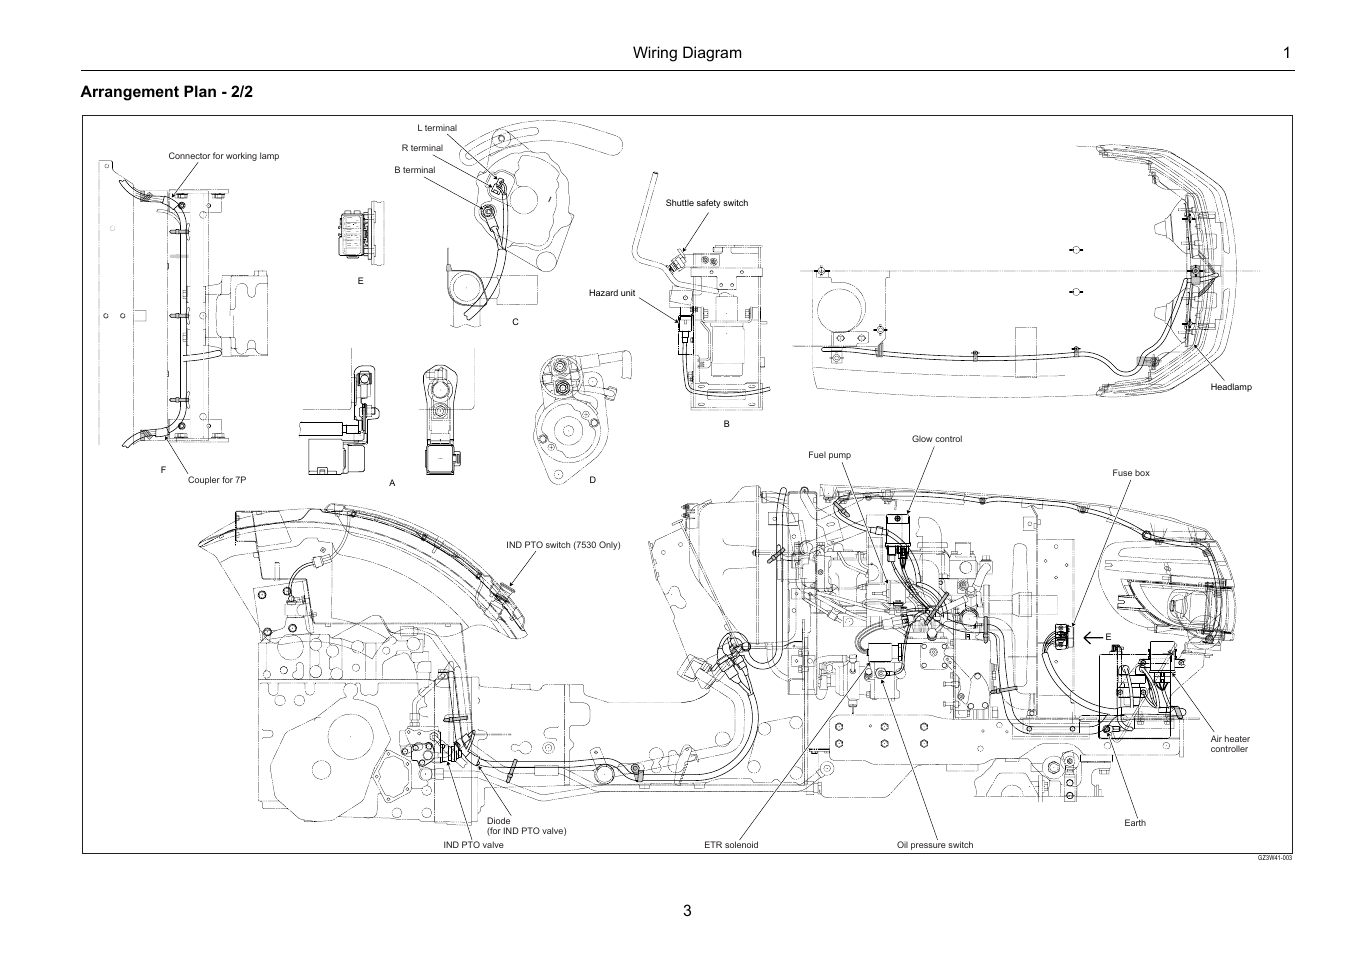 Cub Cadet Fuse Box 18 Wiring Diagram Images Diagrams Bennche 7532 Page215 1 3 Arrangement Plan 2 User